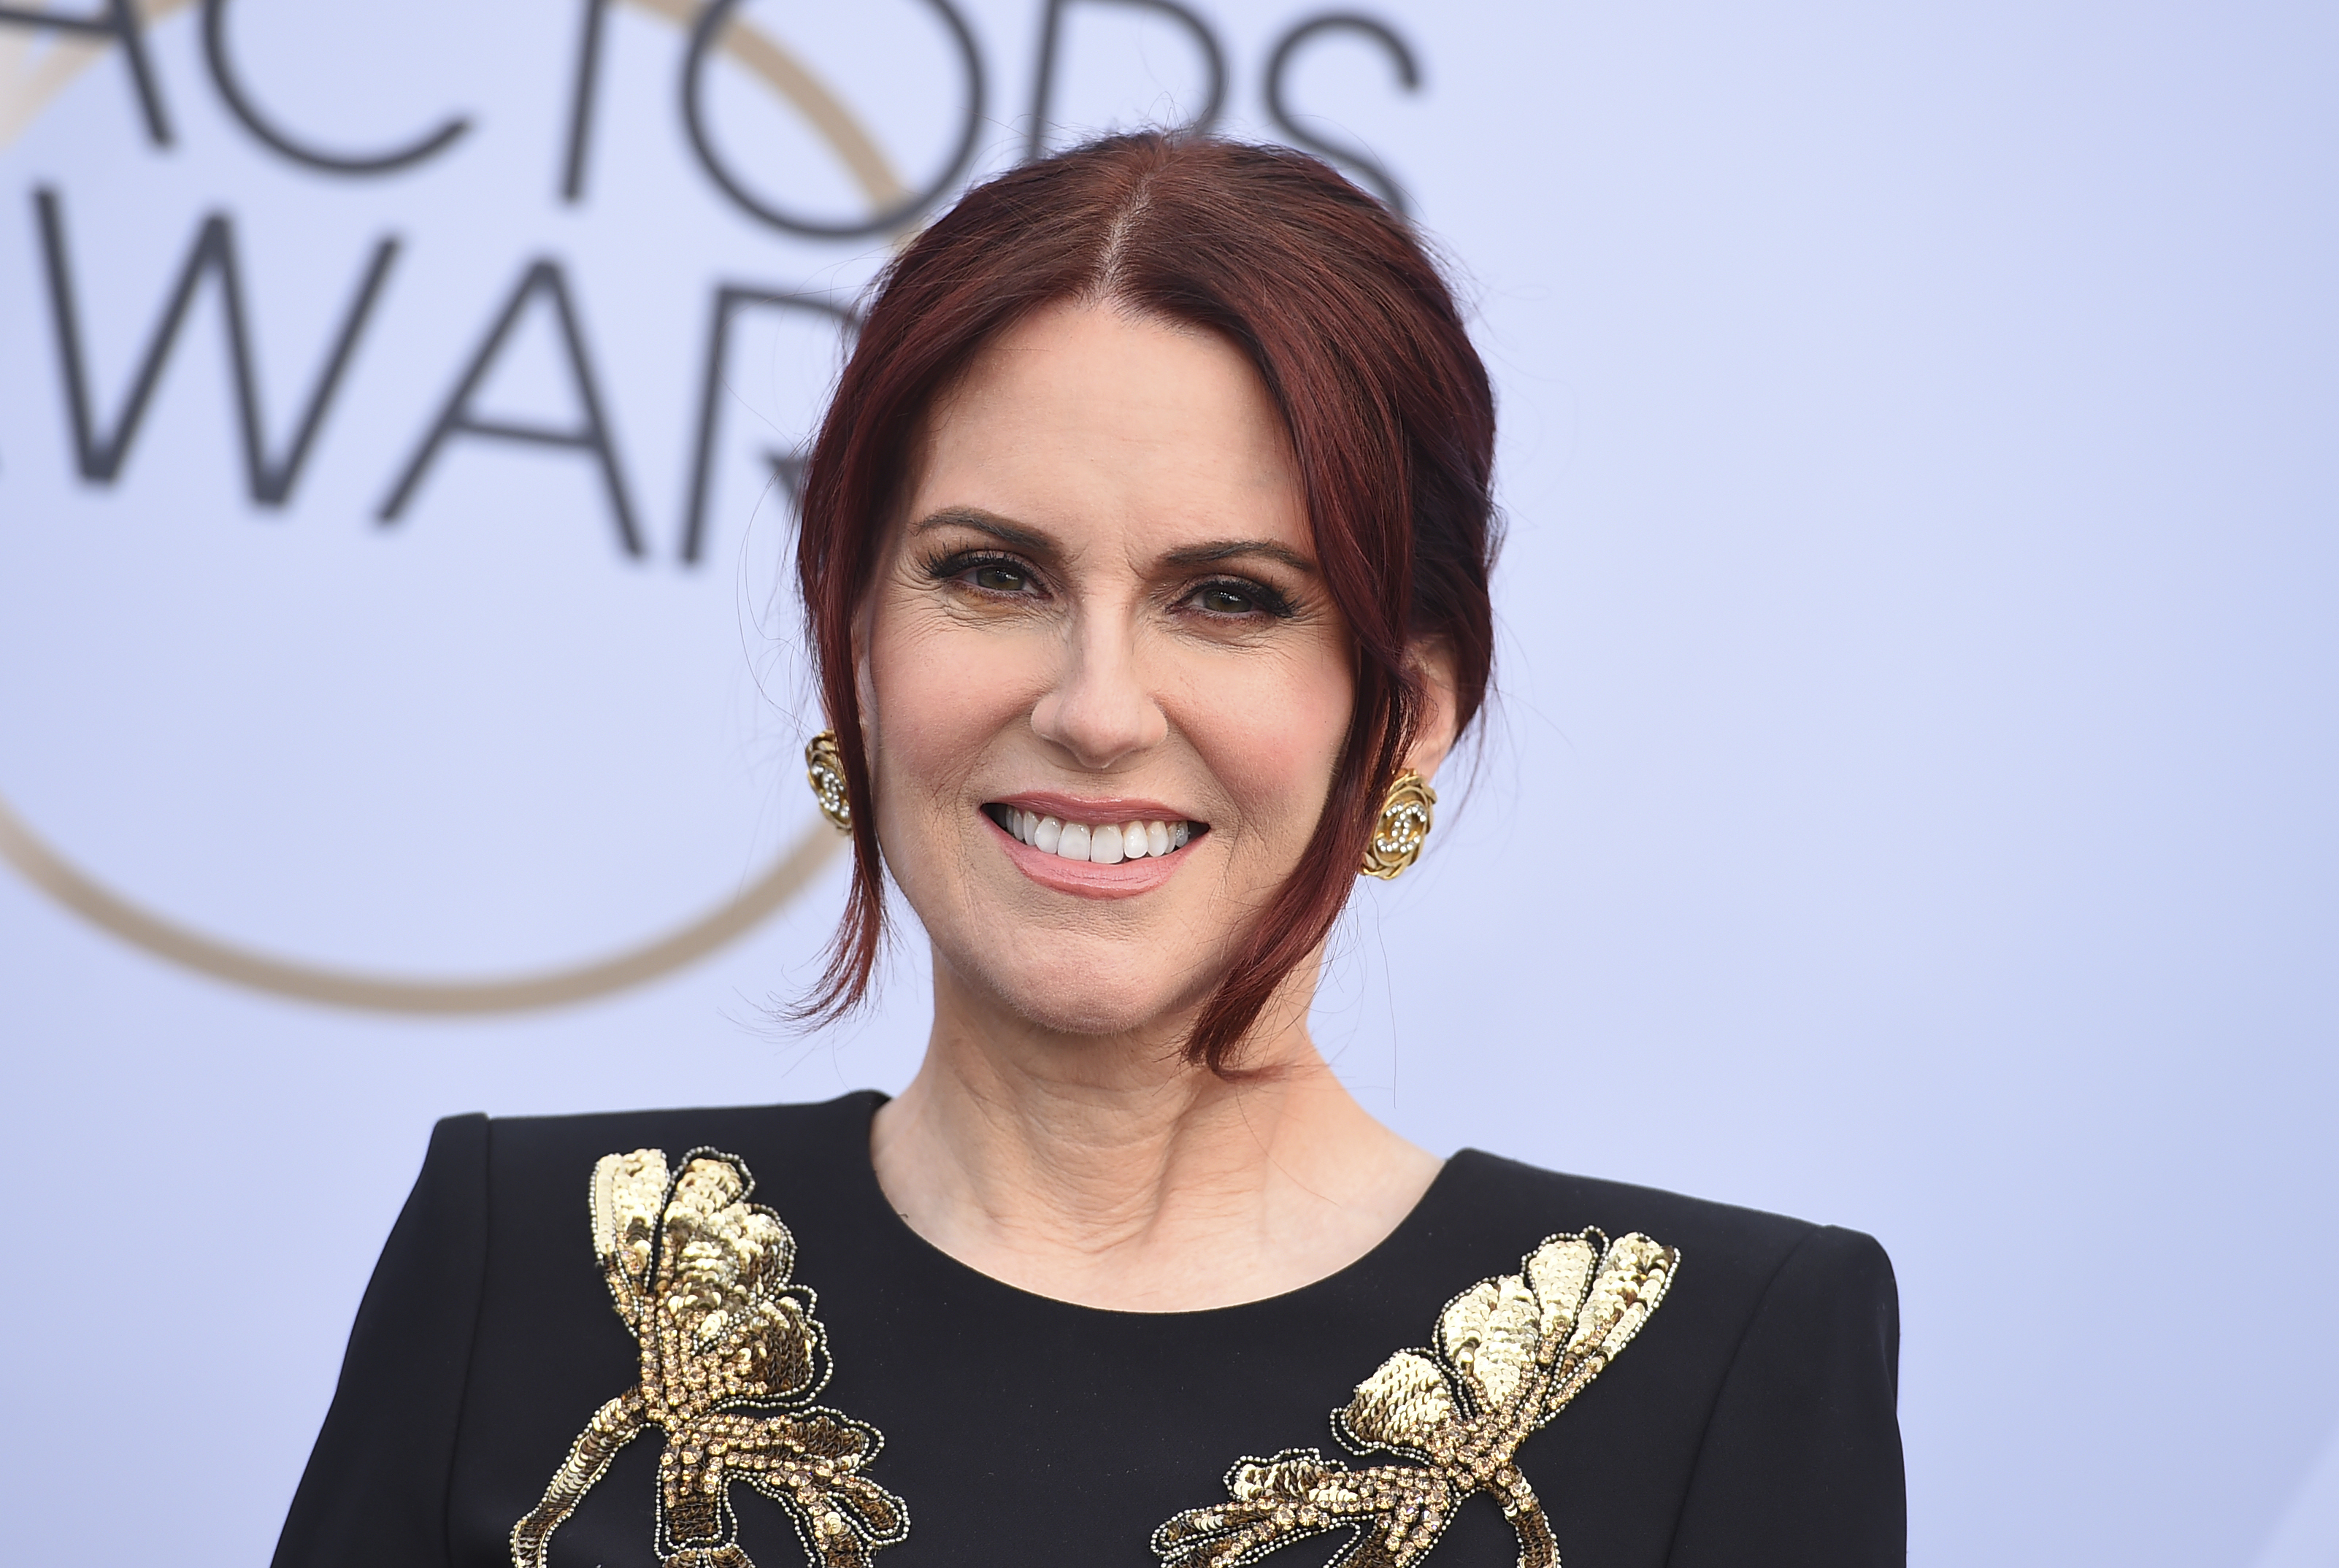 Megan Mullally arrives at the 25th annual Screen Actors Guild Awards at the Shrine Auditorium & Expo Hall on Sunday, Jan. 27, 2019, in Los Angeles. (Photo by Jordan Strauss/Invision/AP)